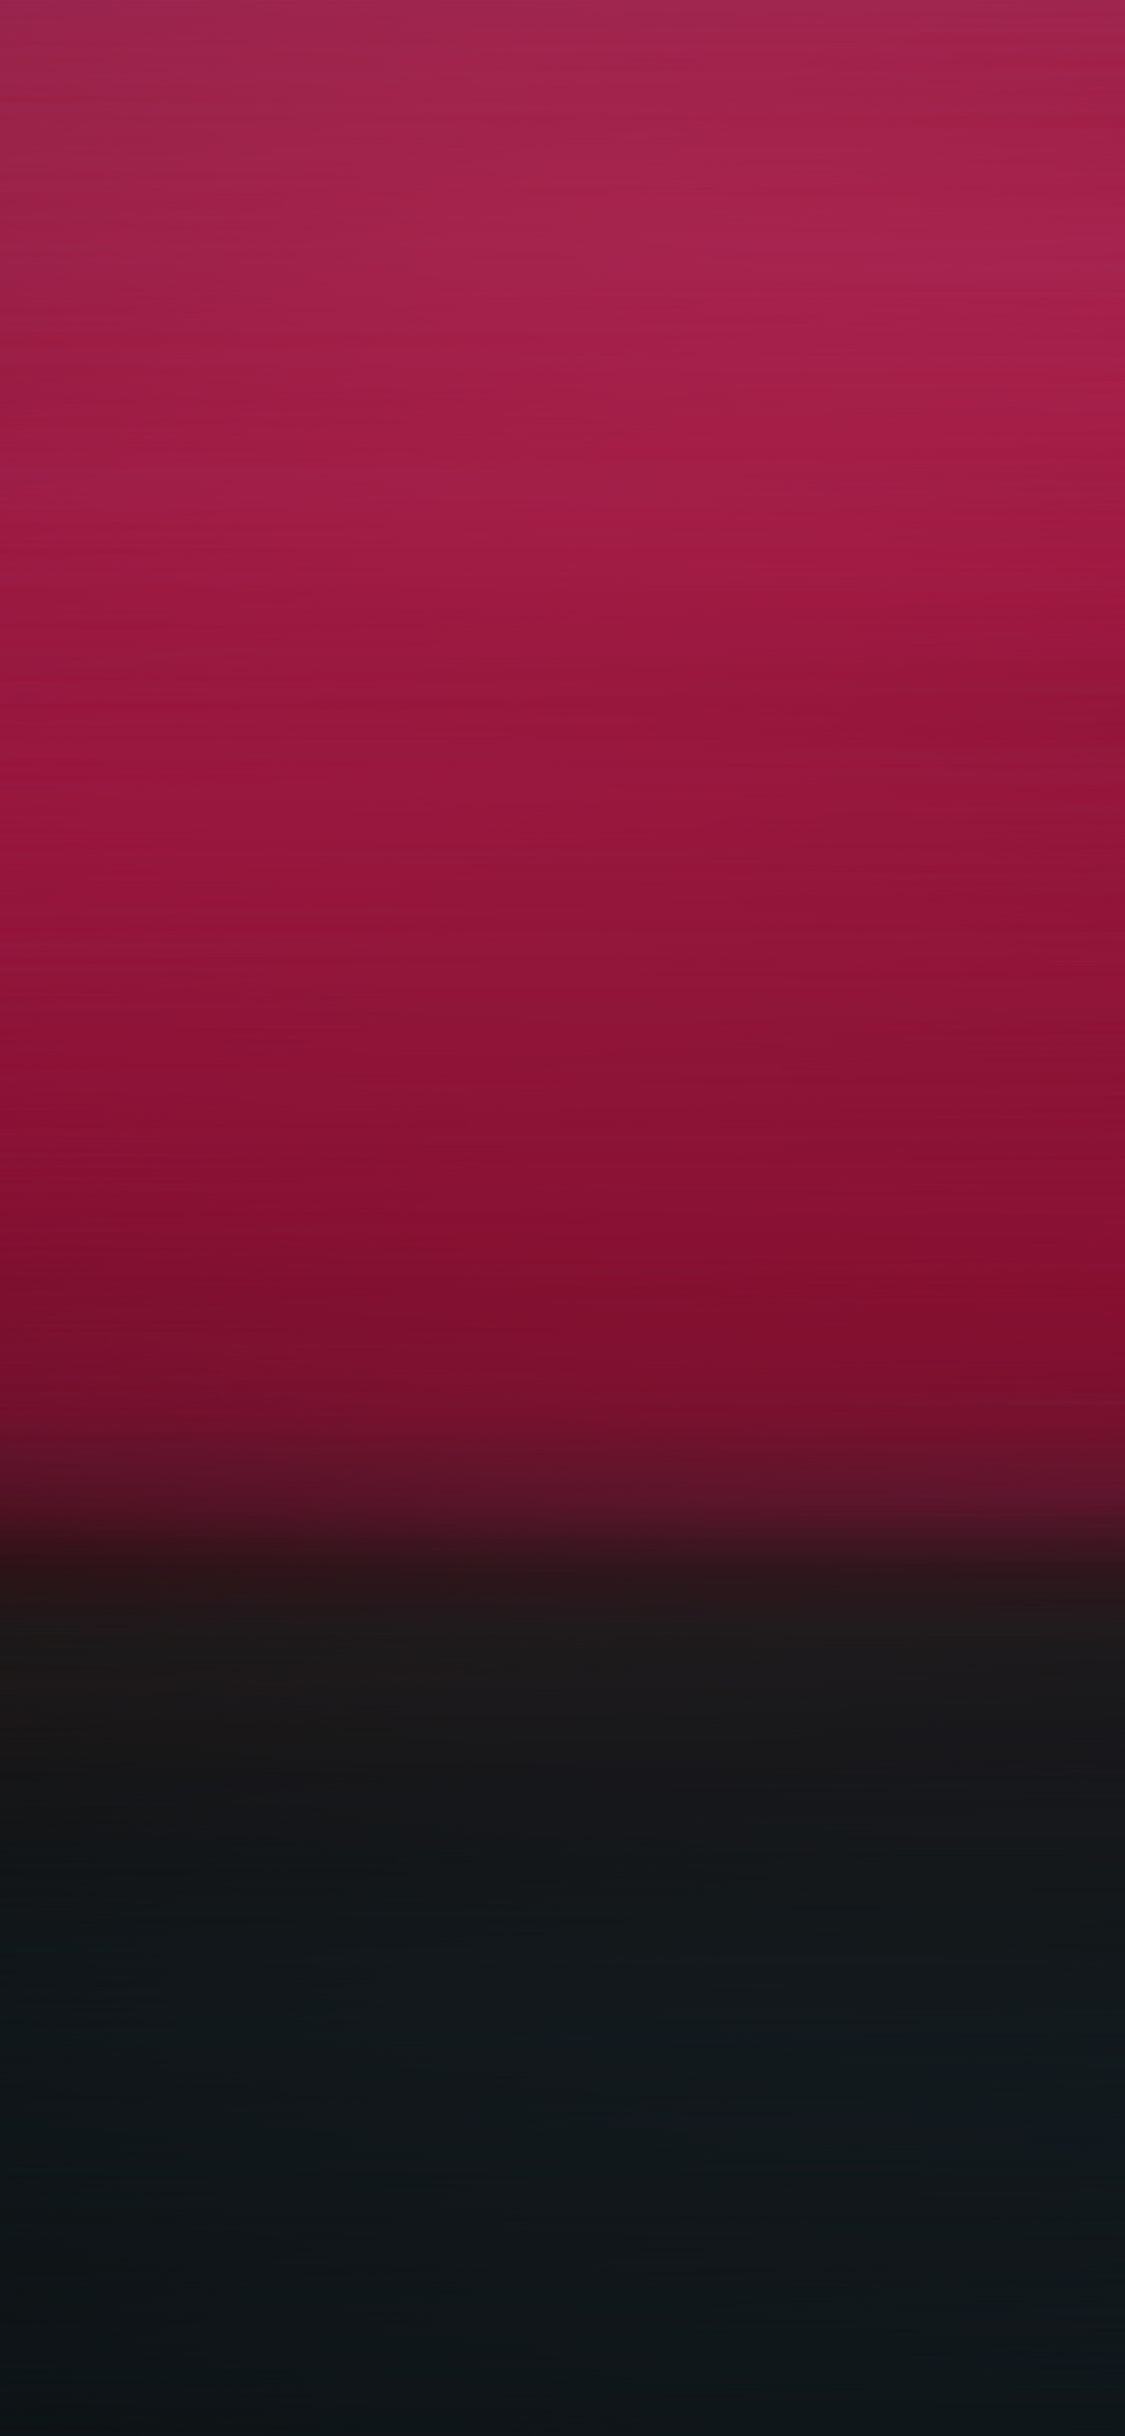 Com Apple Iphone Wallpaper Sg31 Motion Dark Red Black Colorfulness 3042006 Hd Wallpaper Backgrounds Download